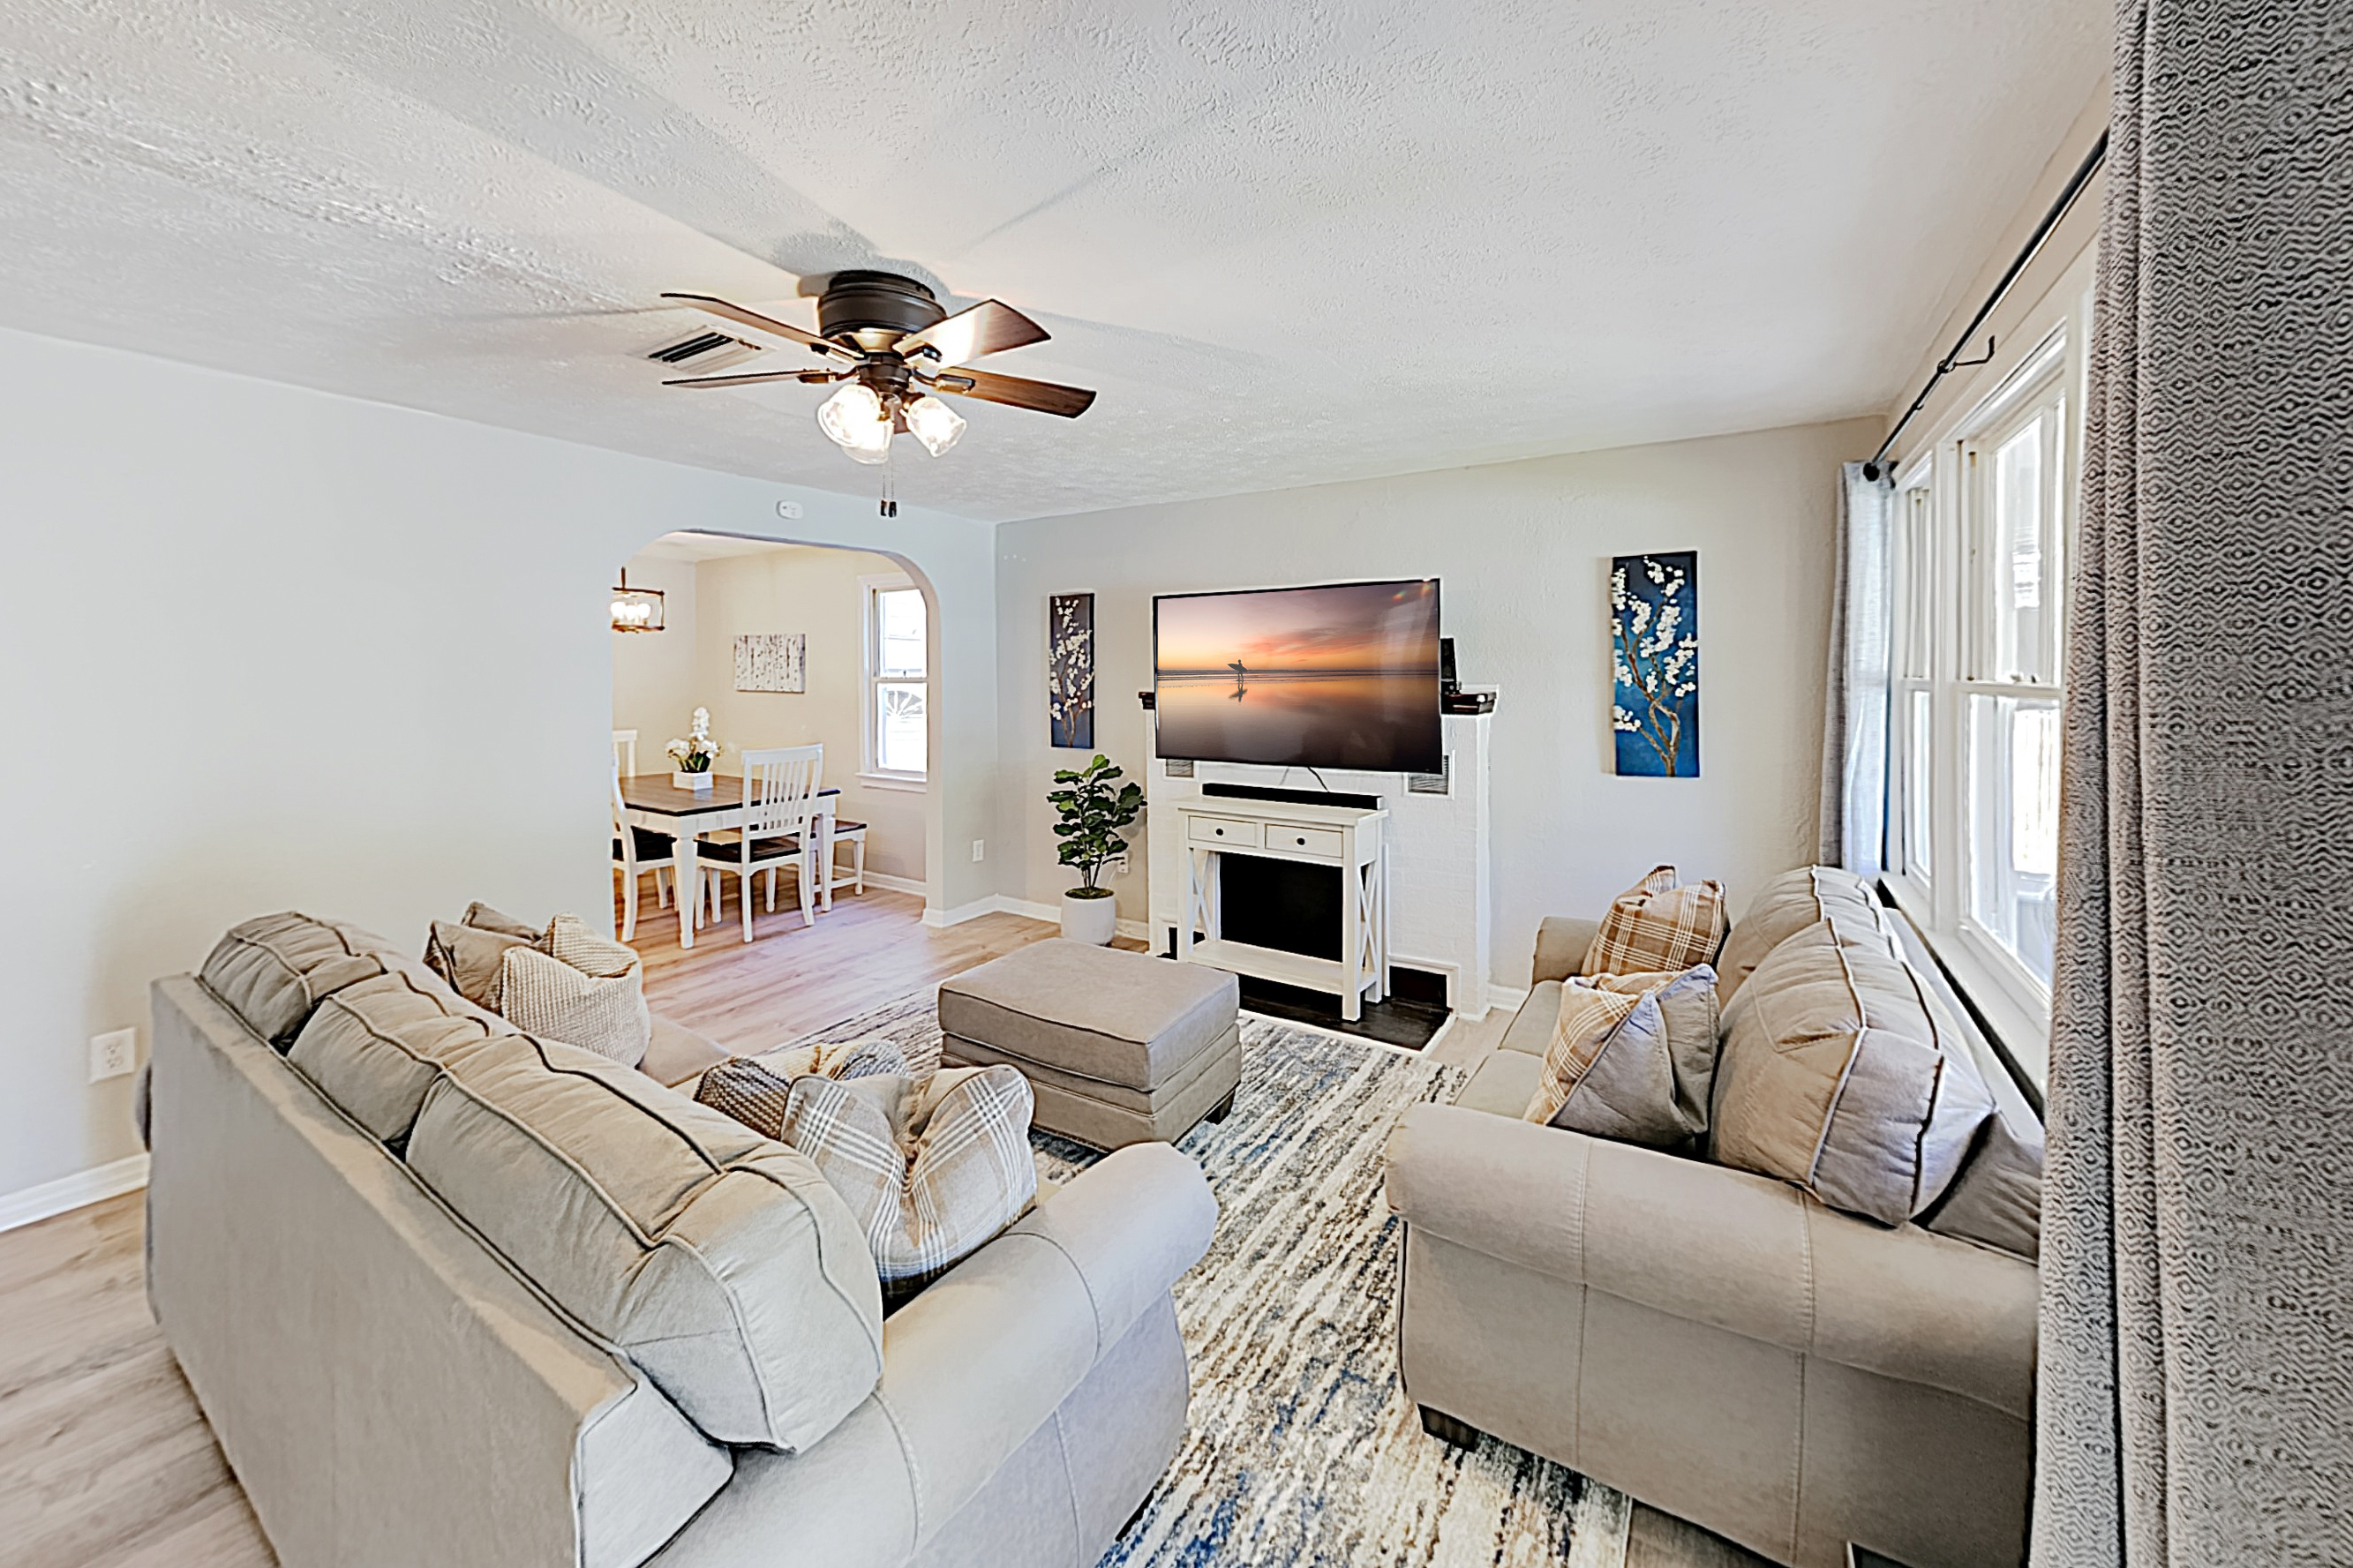 St. Augustine FL Vacation Rental Welcome to the